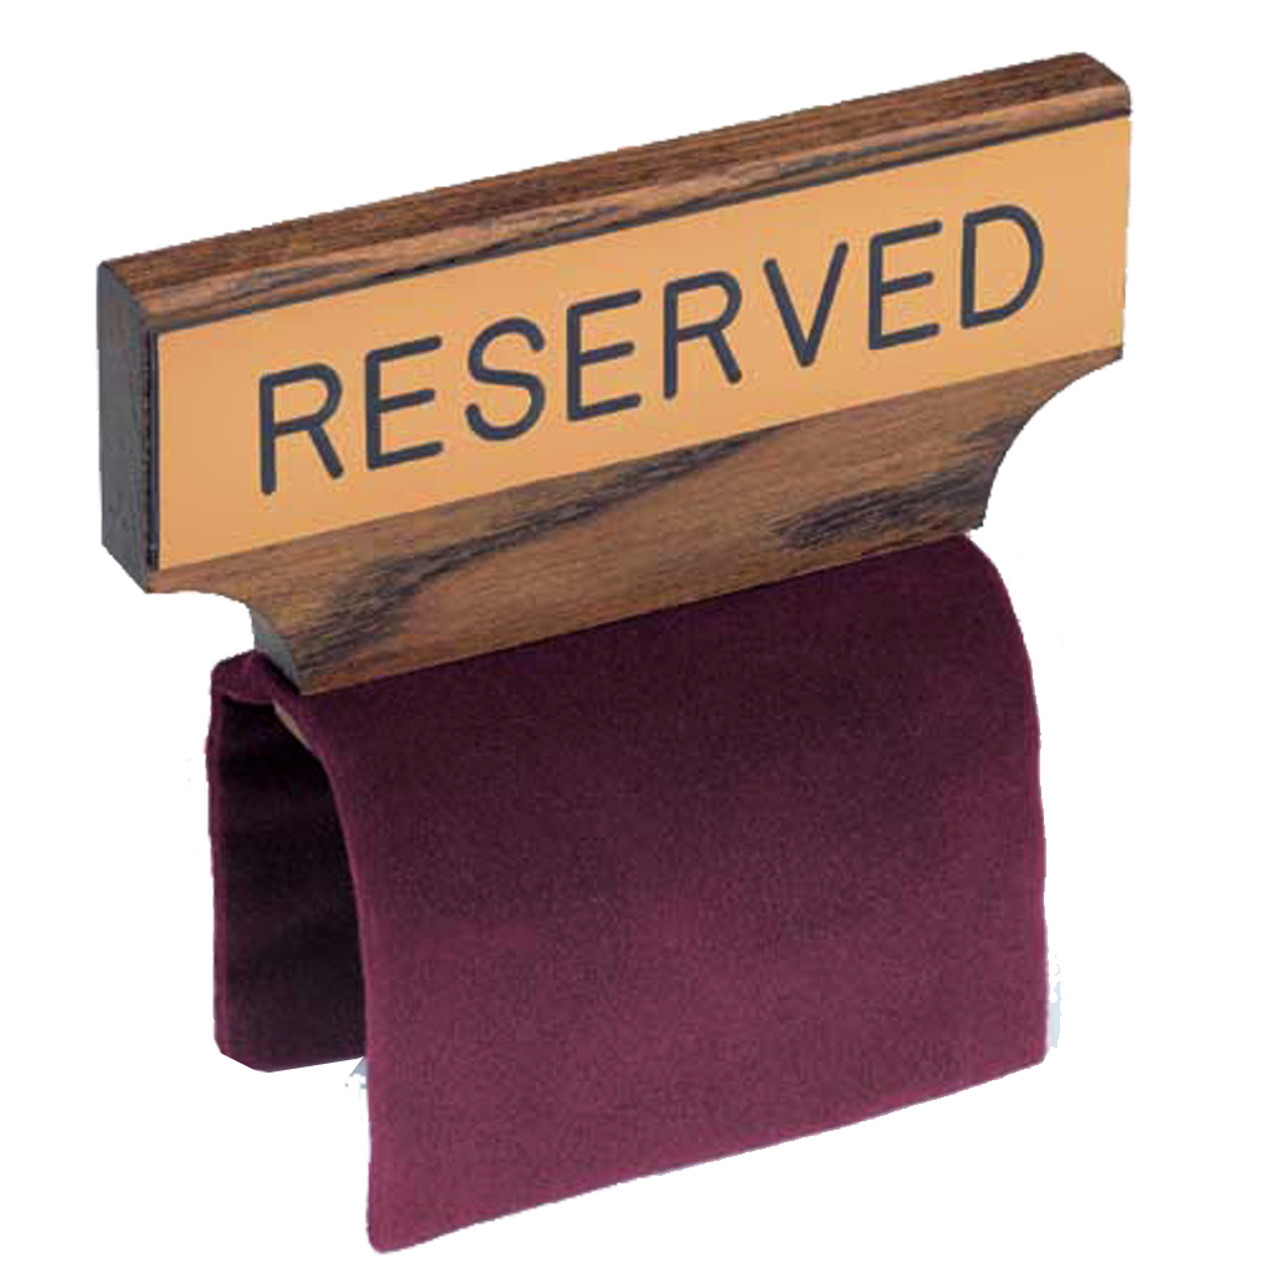 Reserve Sign with Flexible Maroon Clamp